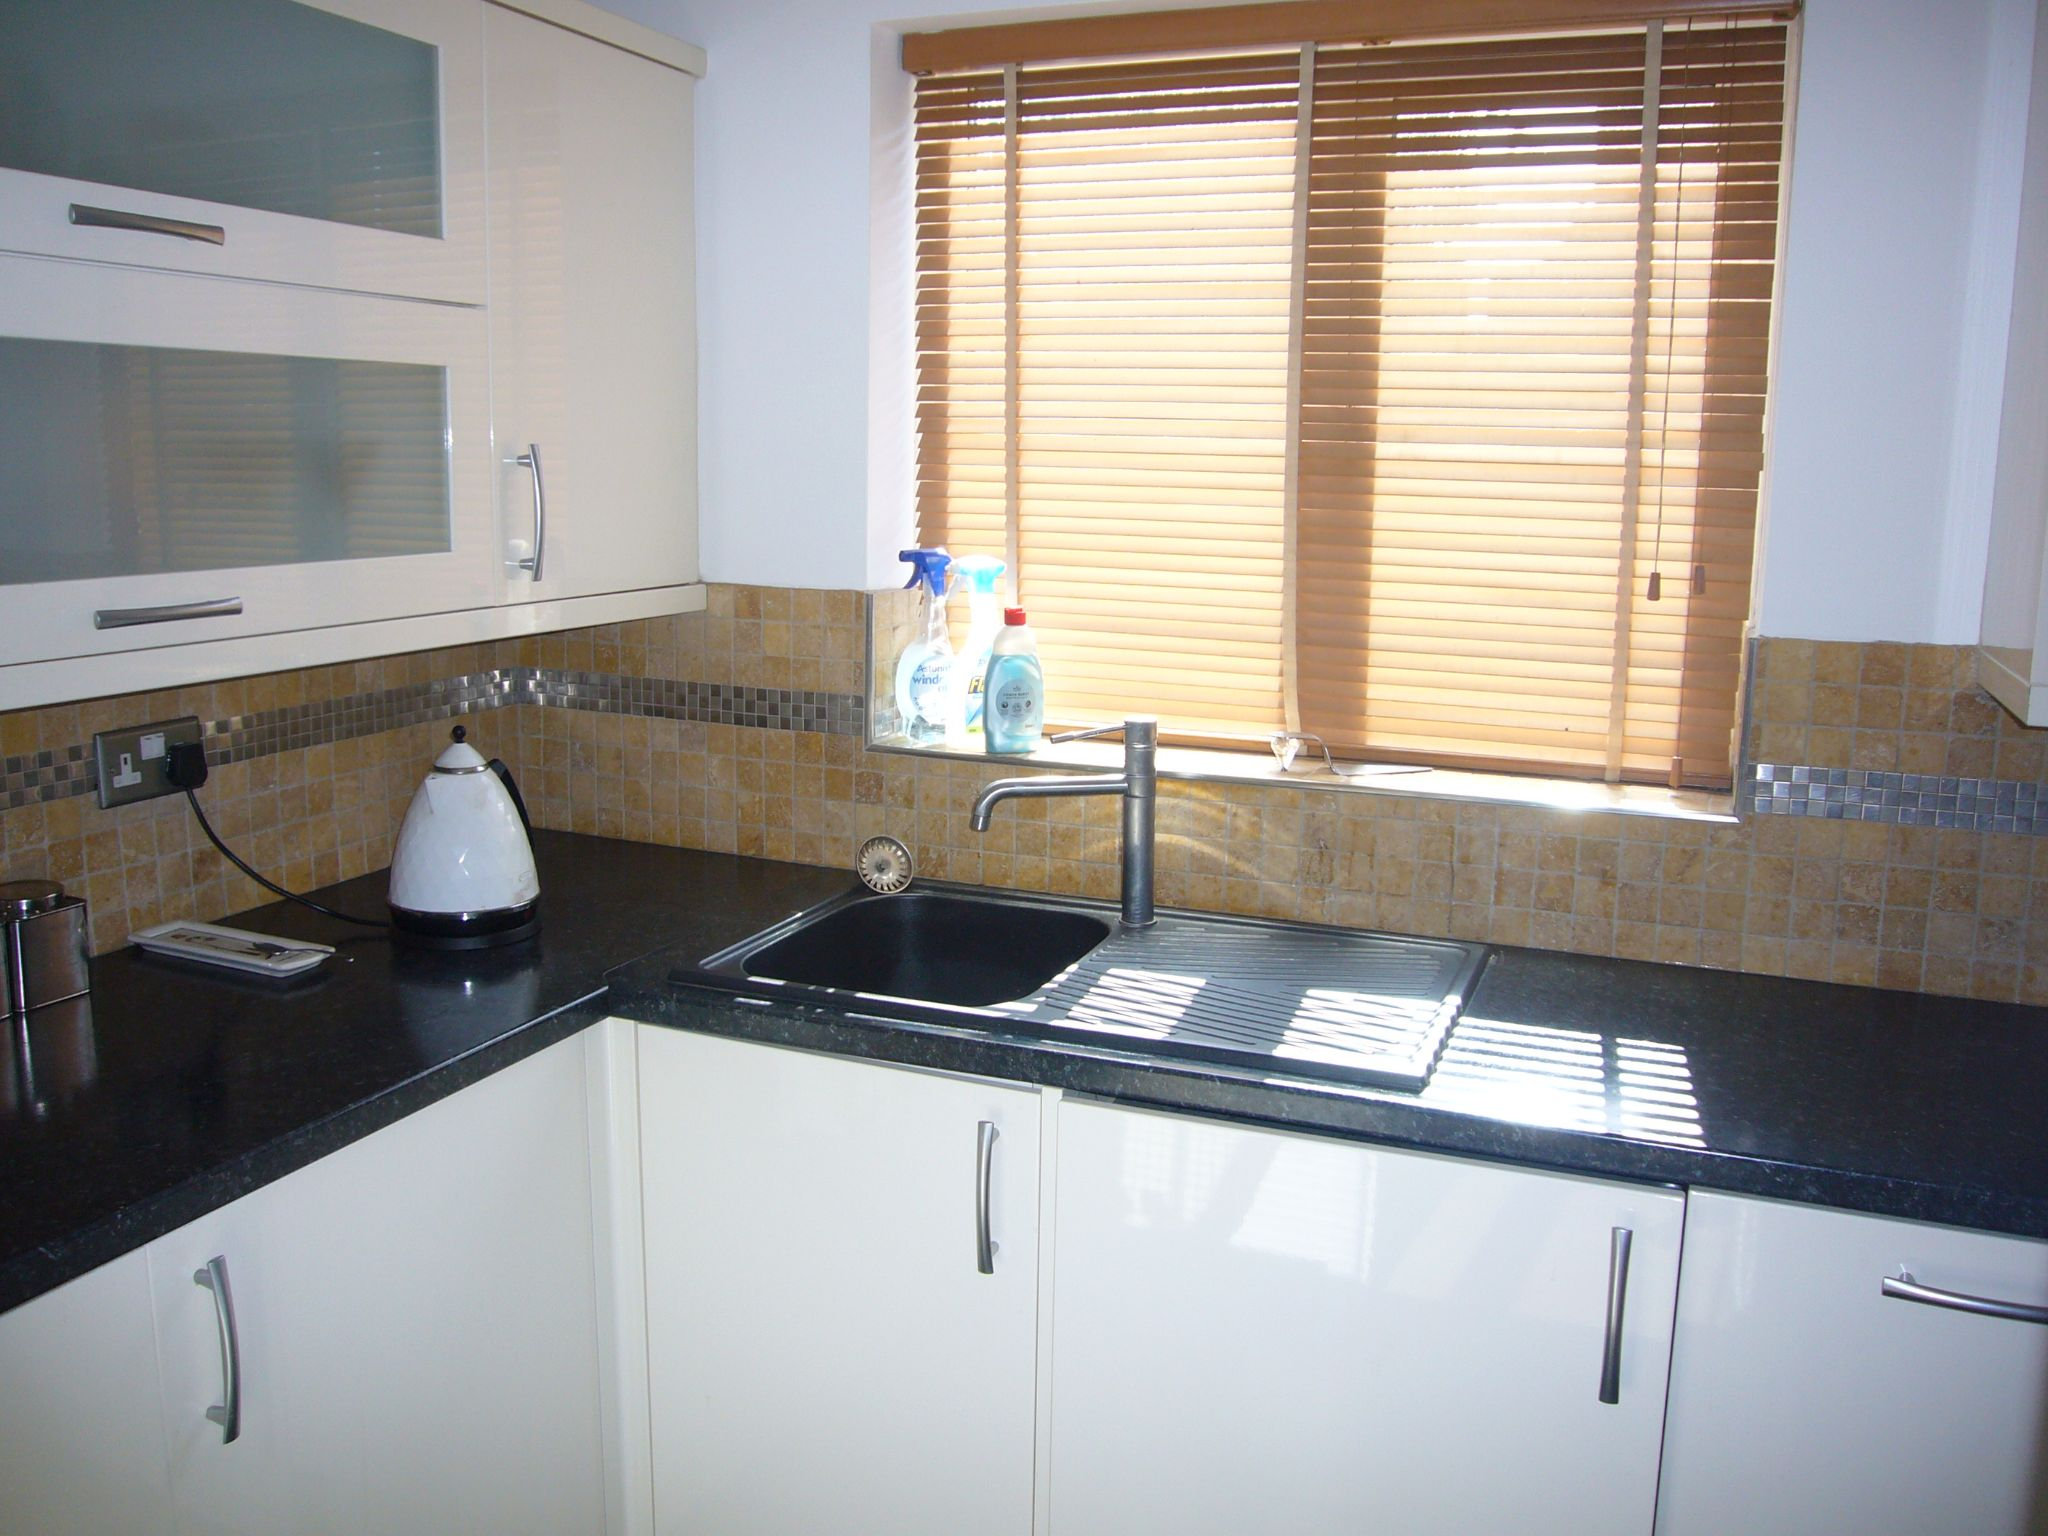 2 bedroom apartment flat/apartment Let Agreed in Sutton - Photograph 4.